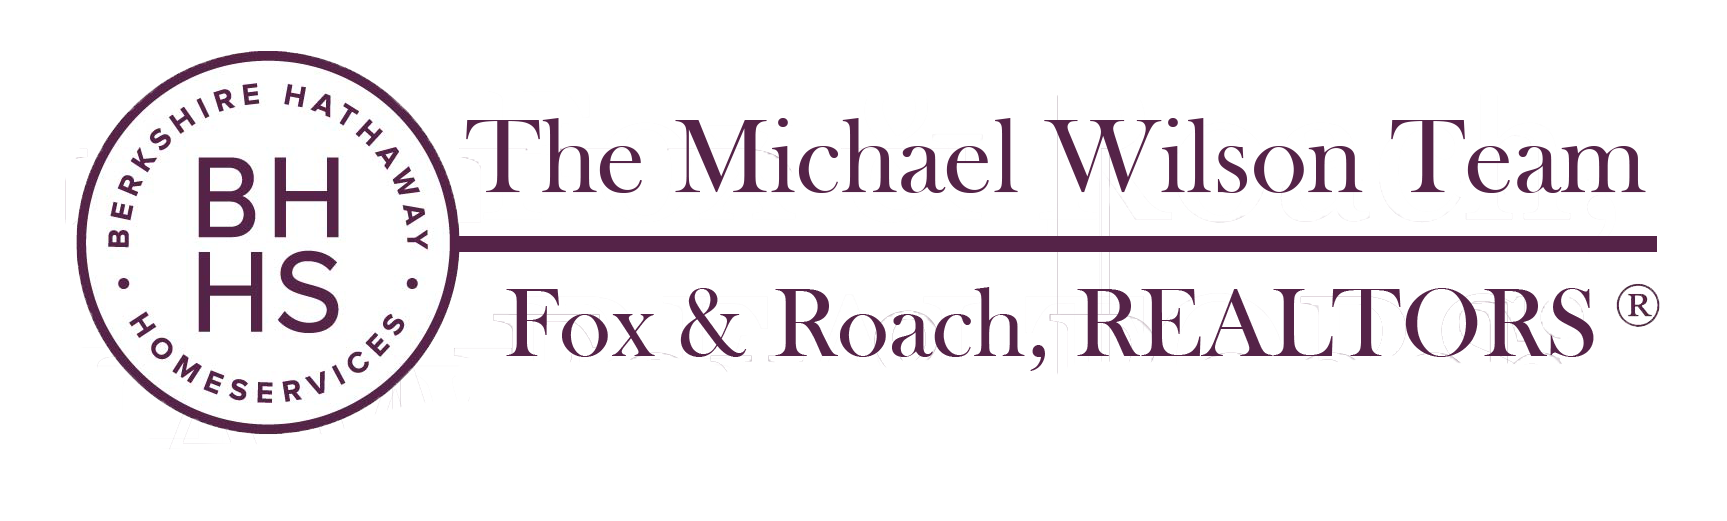 The Michael Wilson Team, Berkshire Hathaway Home Services/Fox & Roach Realtors